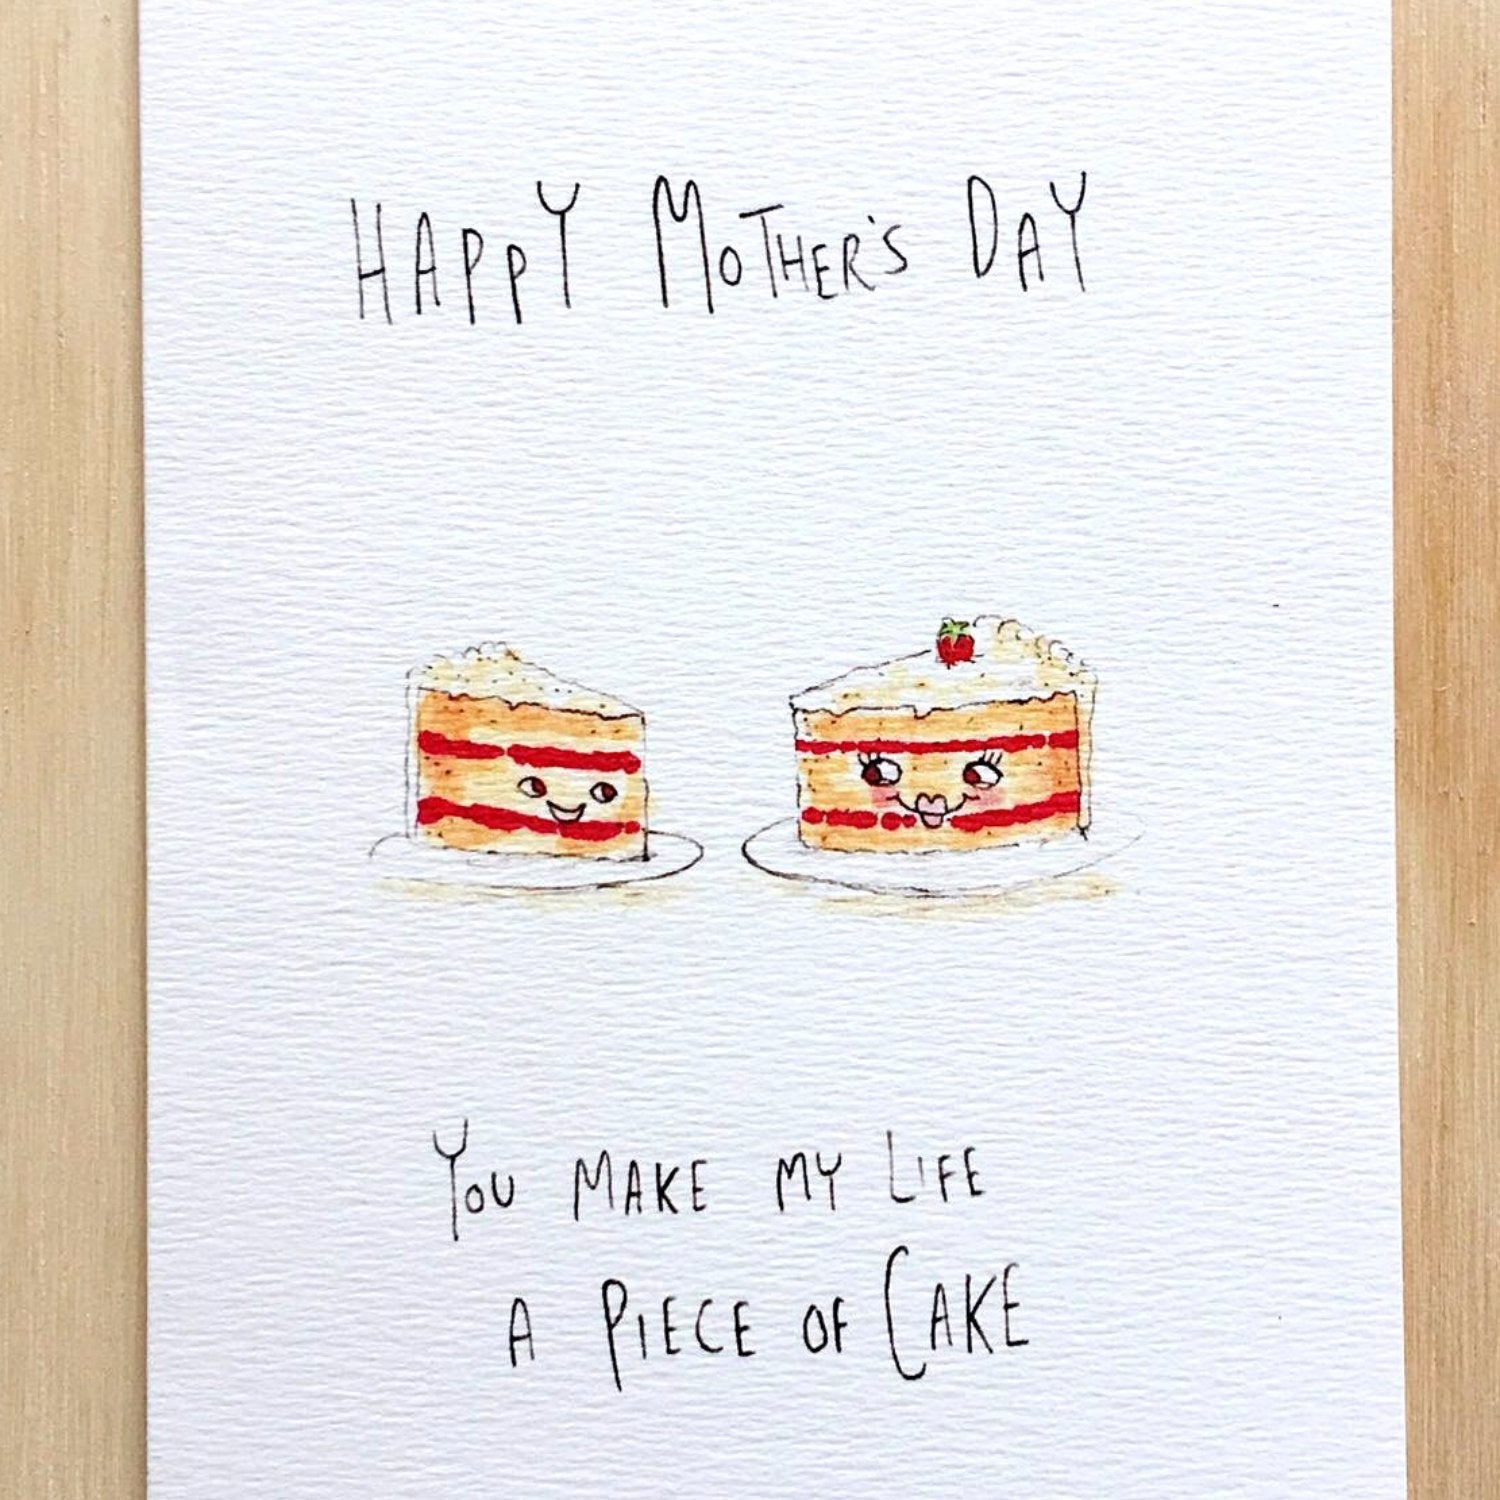 Happy Mother's Day, You Make My Life A Piece Of Cake - Well Drawn